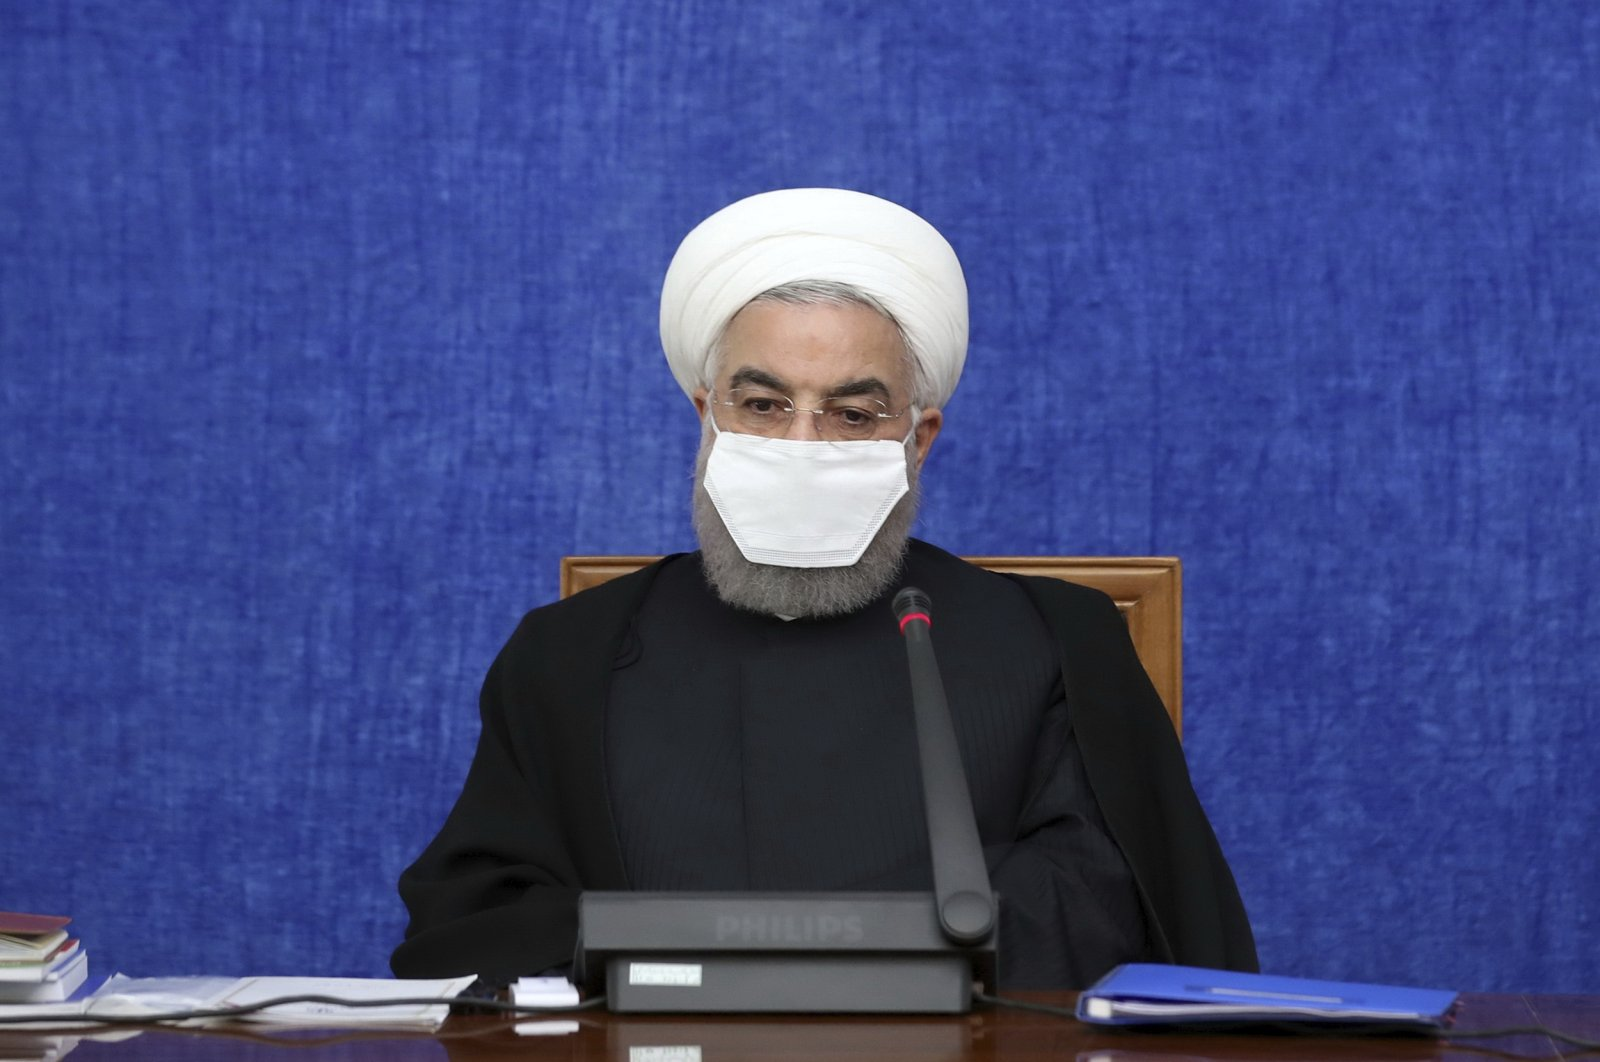 In this Oct. 13, 2020, photo, released by the official website of the office of the Iranian Presidency, President Hassan Rouhani wearing a protective face mask to help prevent spread of the coronavirus attends a meeting in Tehran, Iran. (Office of the Iranian Presidency via AP)